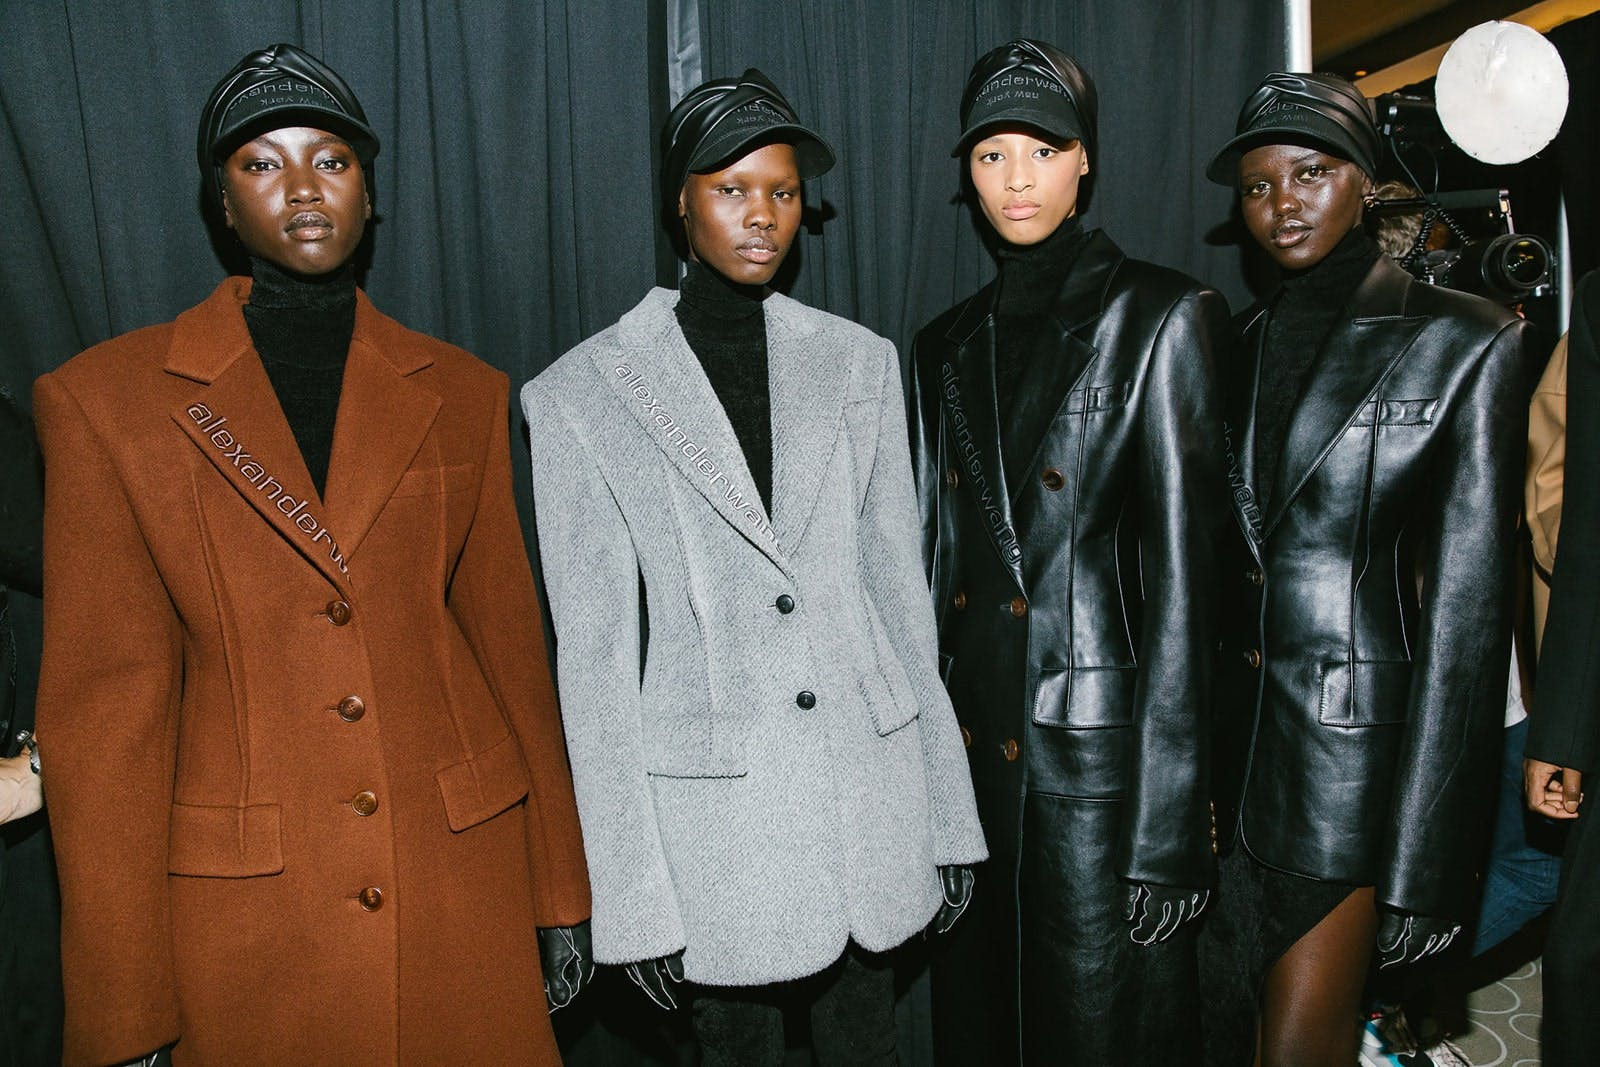 Alexander Wang Backstage Models in Logo Embroidered Coats and Blazers in Wool and Leather Spring 20 RTW